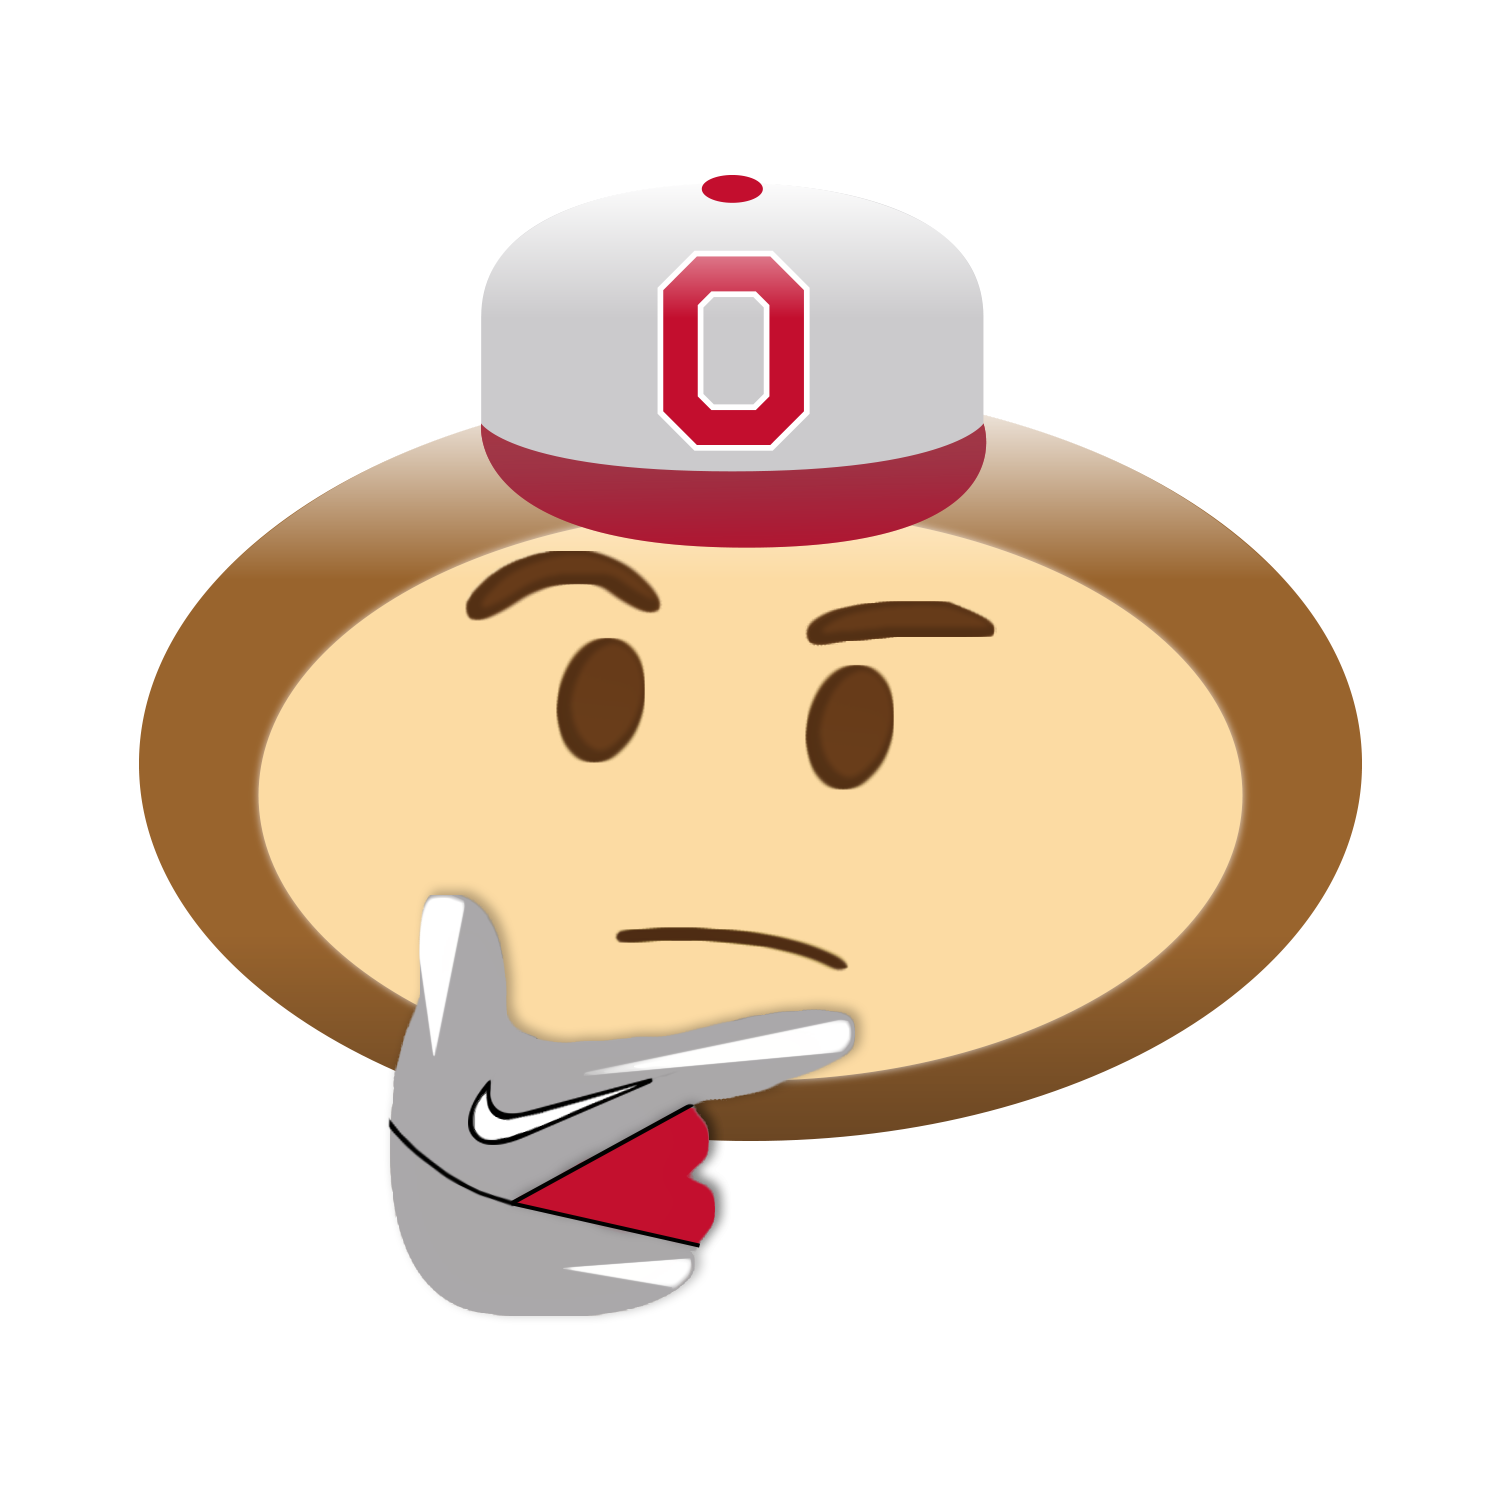 Ohio state football clipart clip royalty free stock Brutus Emojis | Eleven Warriors clip royalty free stock